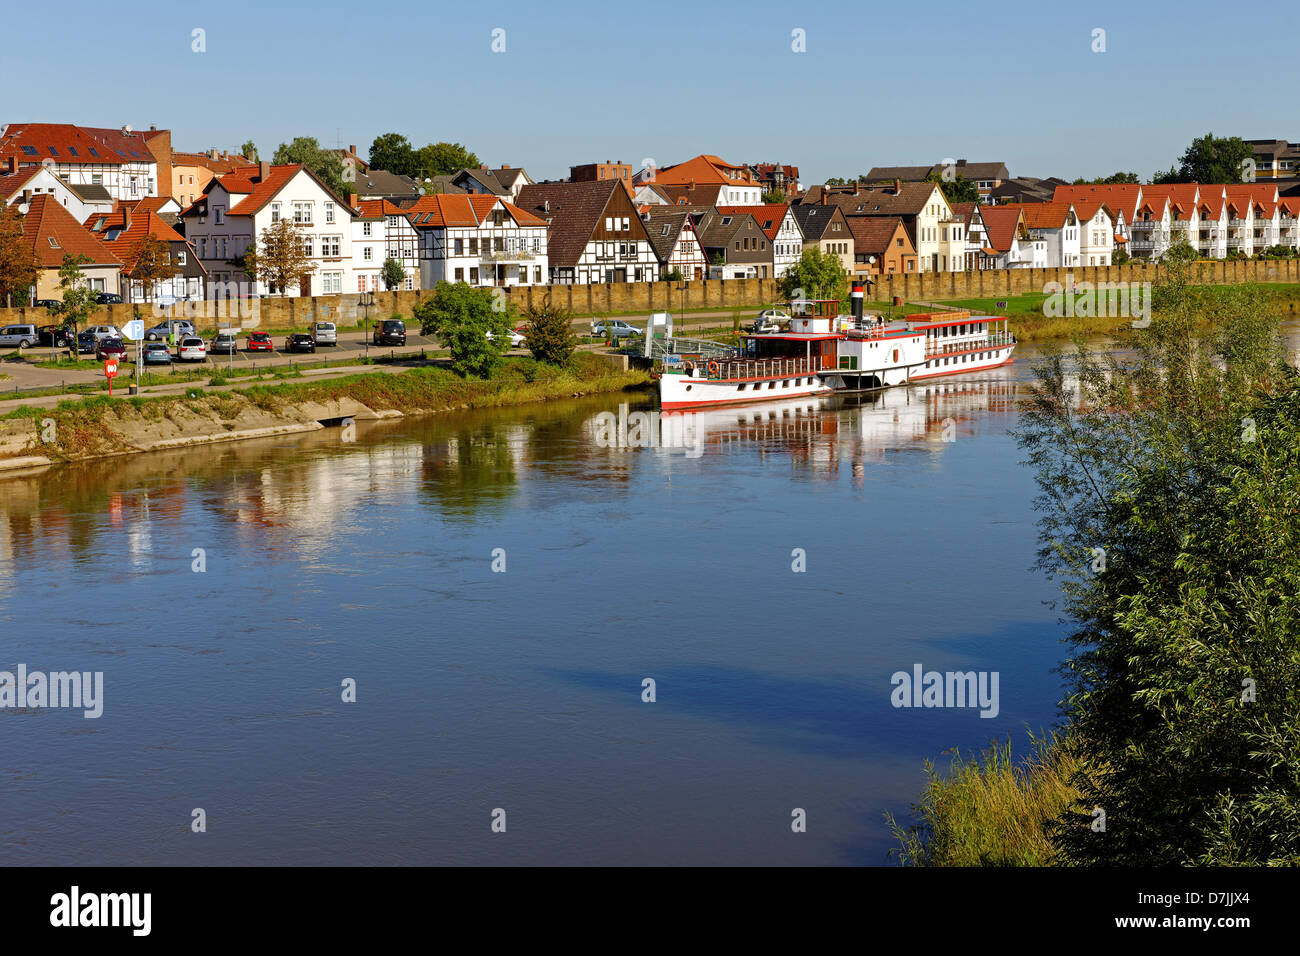 Minden on the Weser, North Rhine-Westphalia, Germany - Stock Image